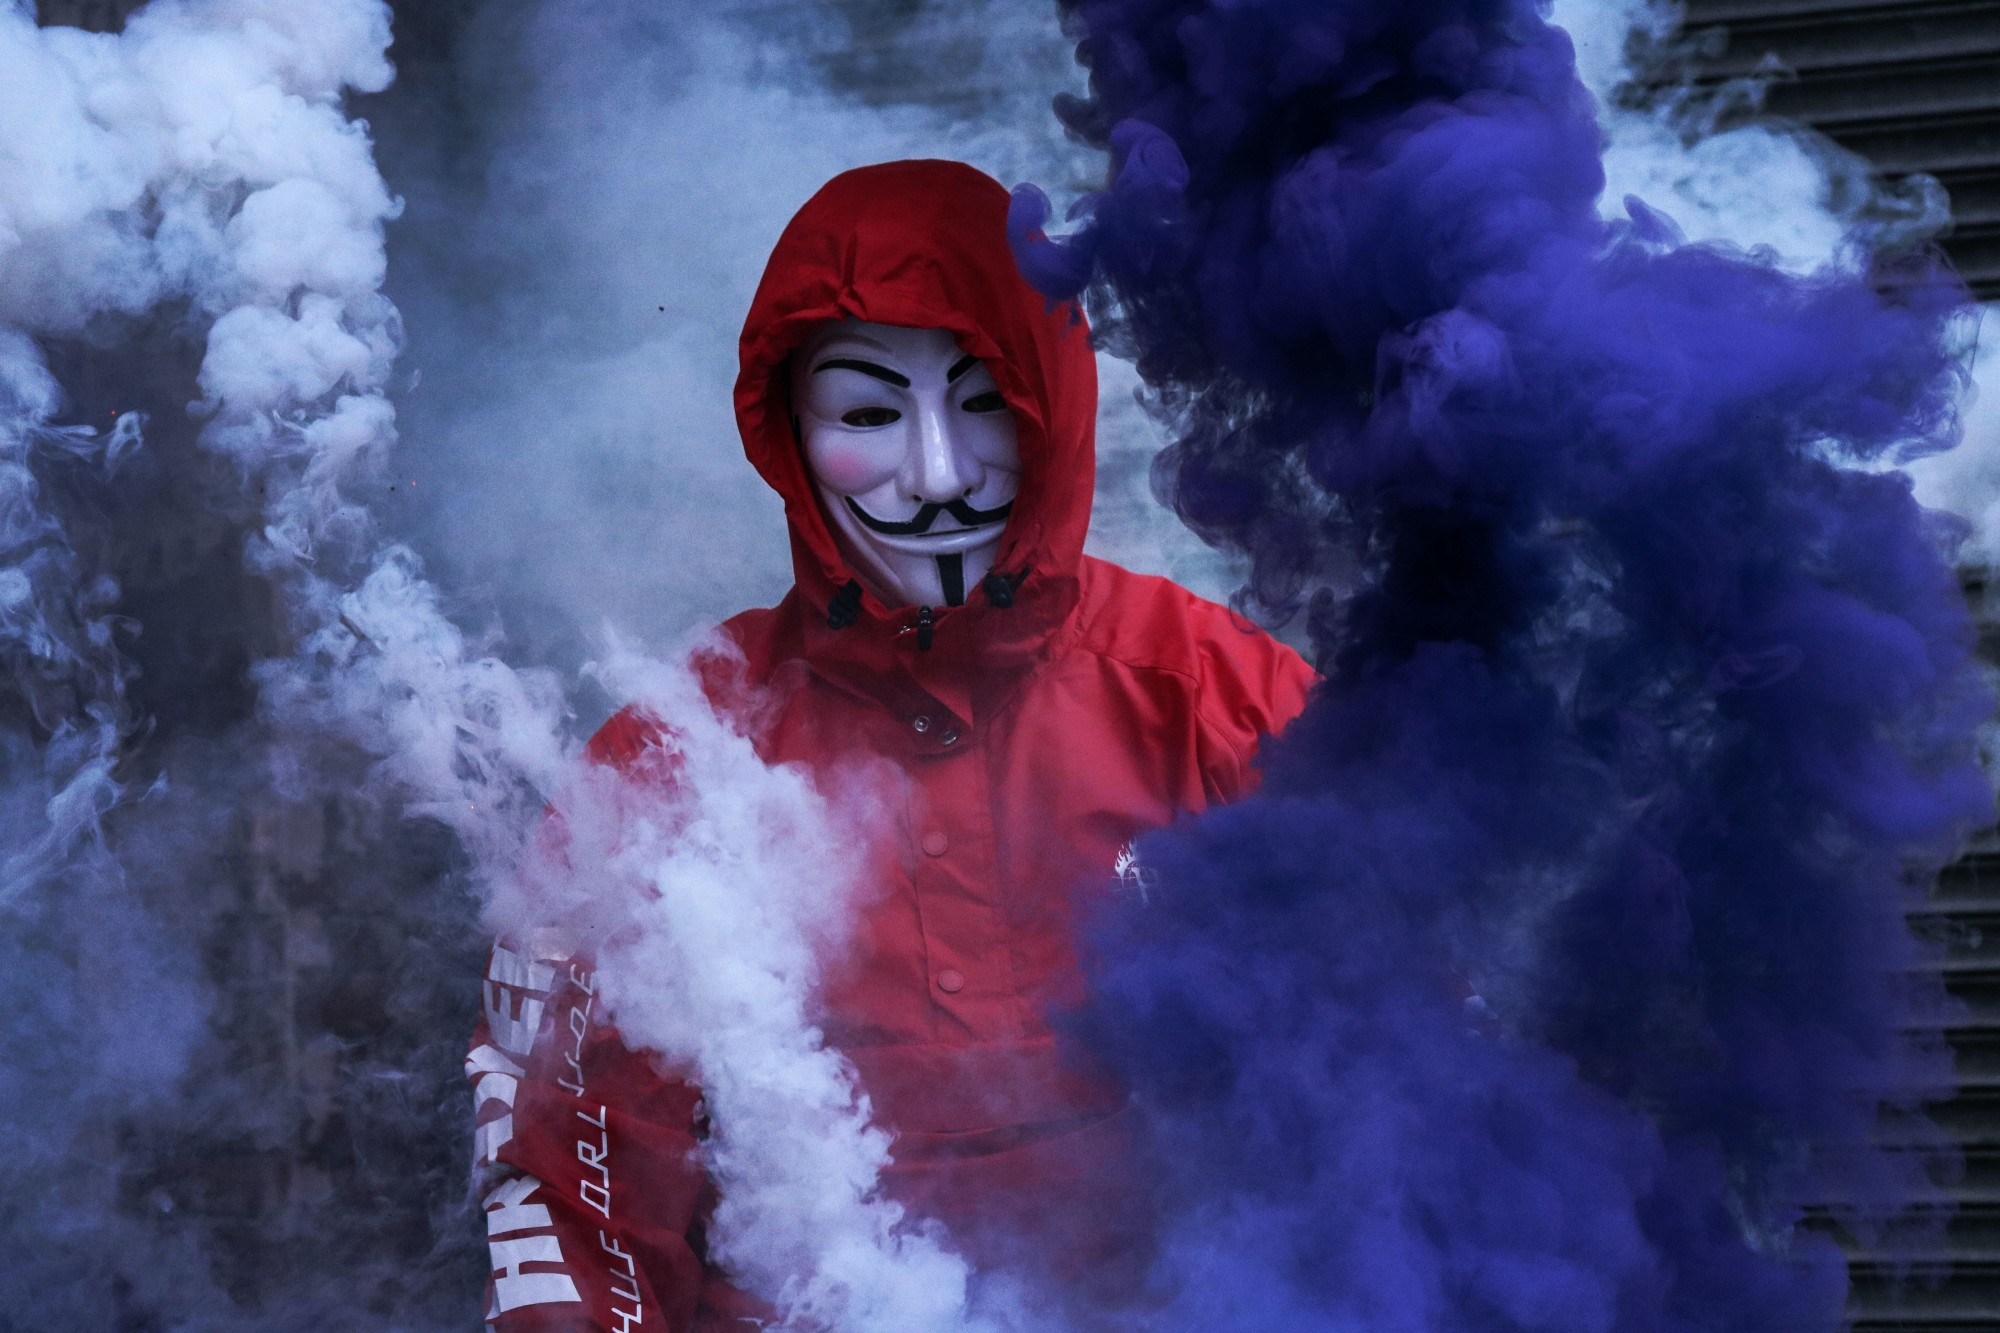 A person in a red jumpsuit wearing an anonymous mask.